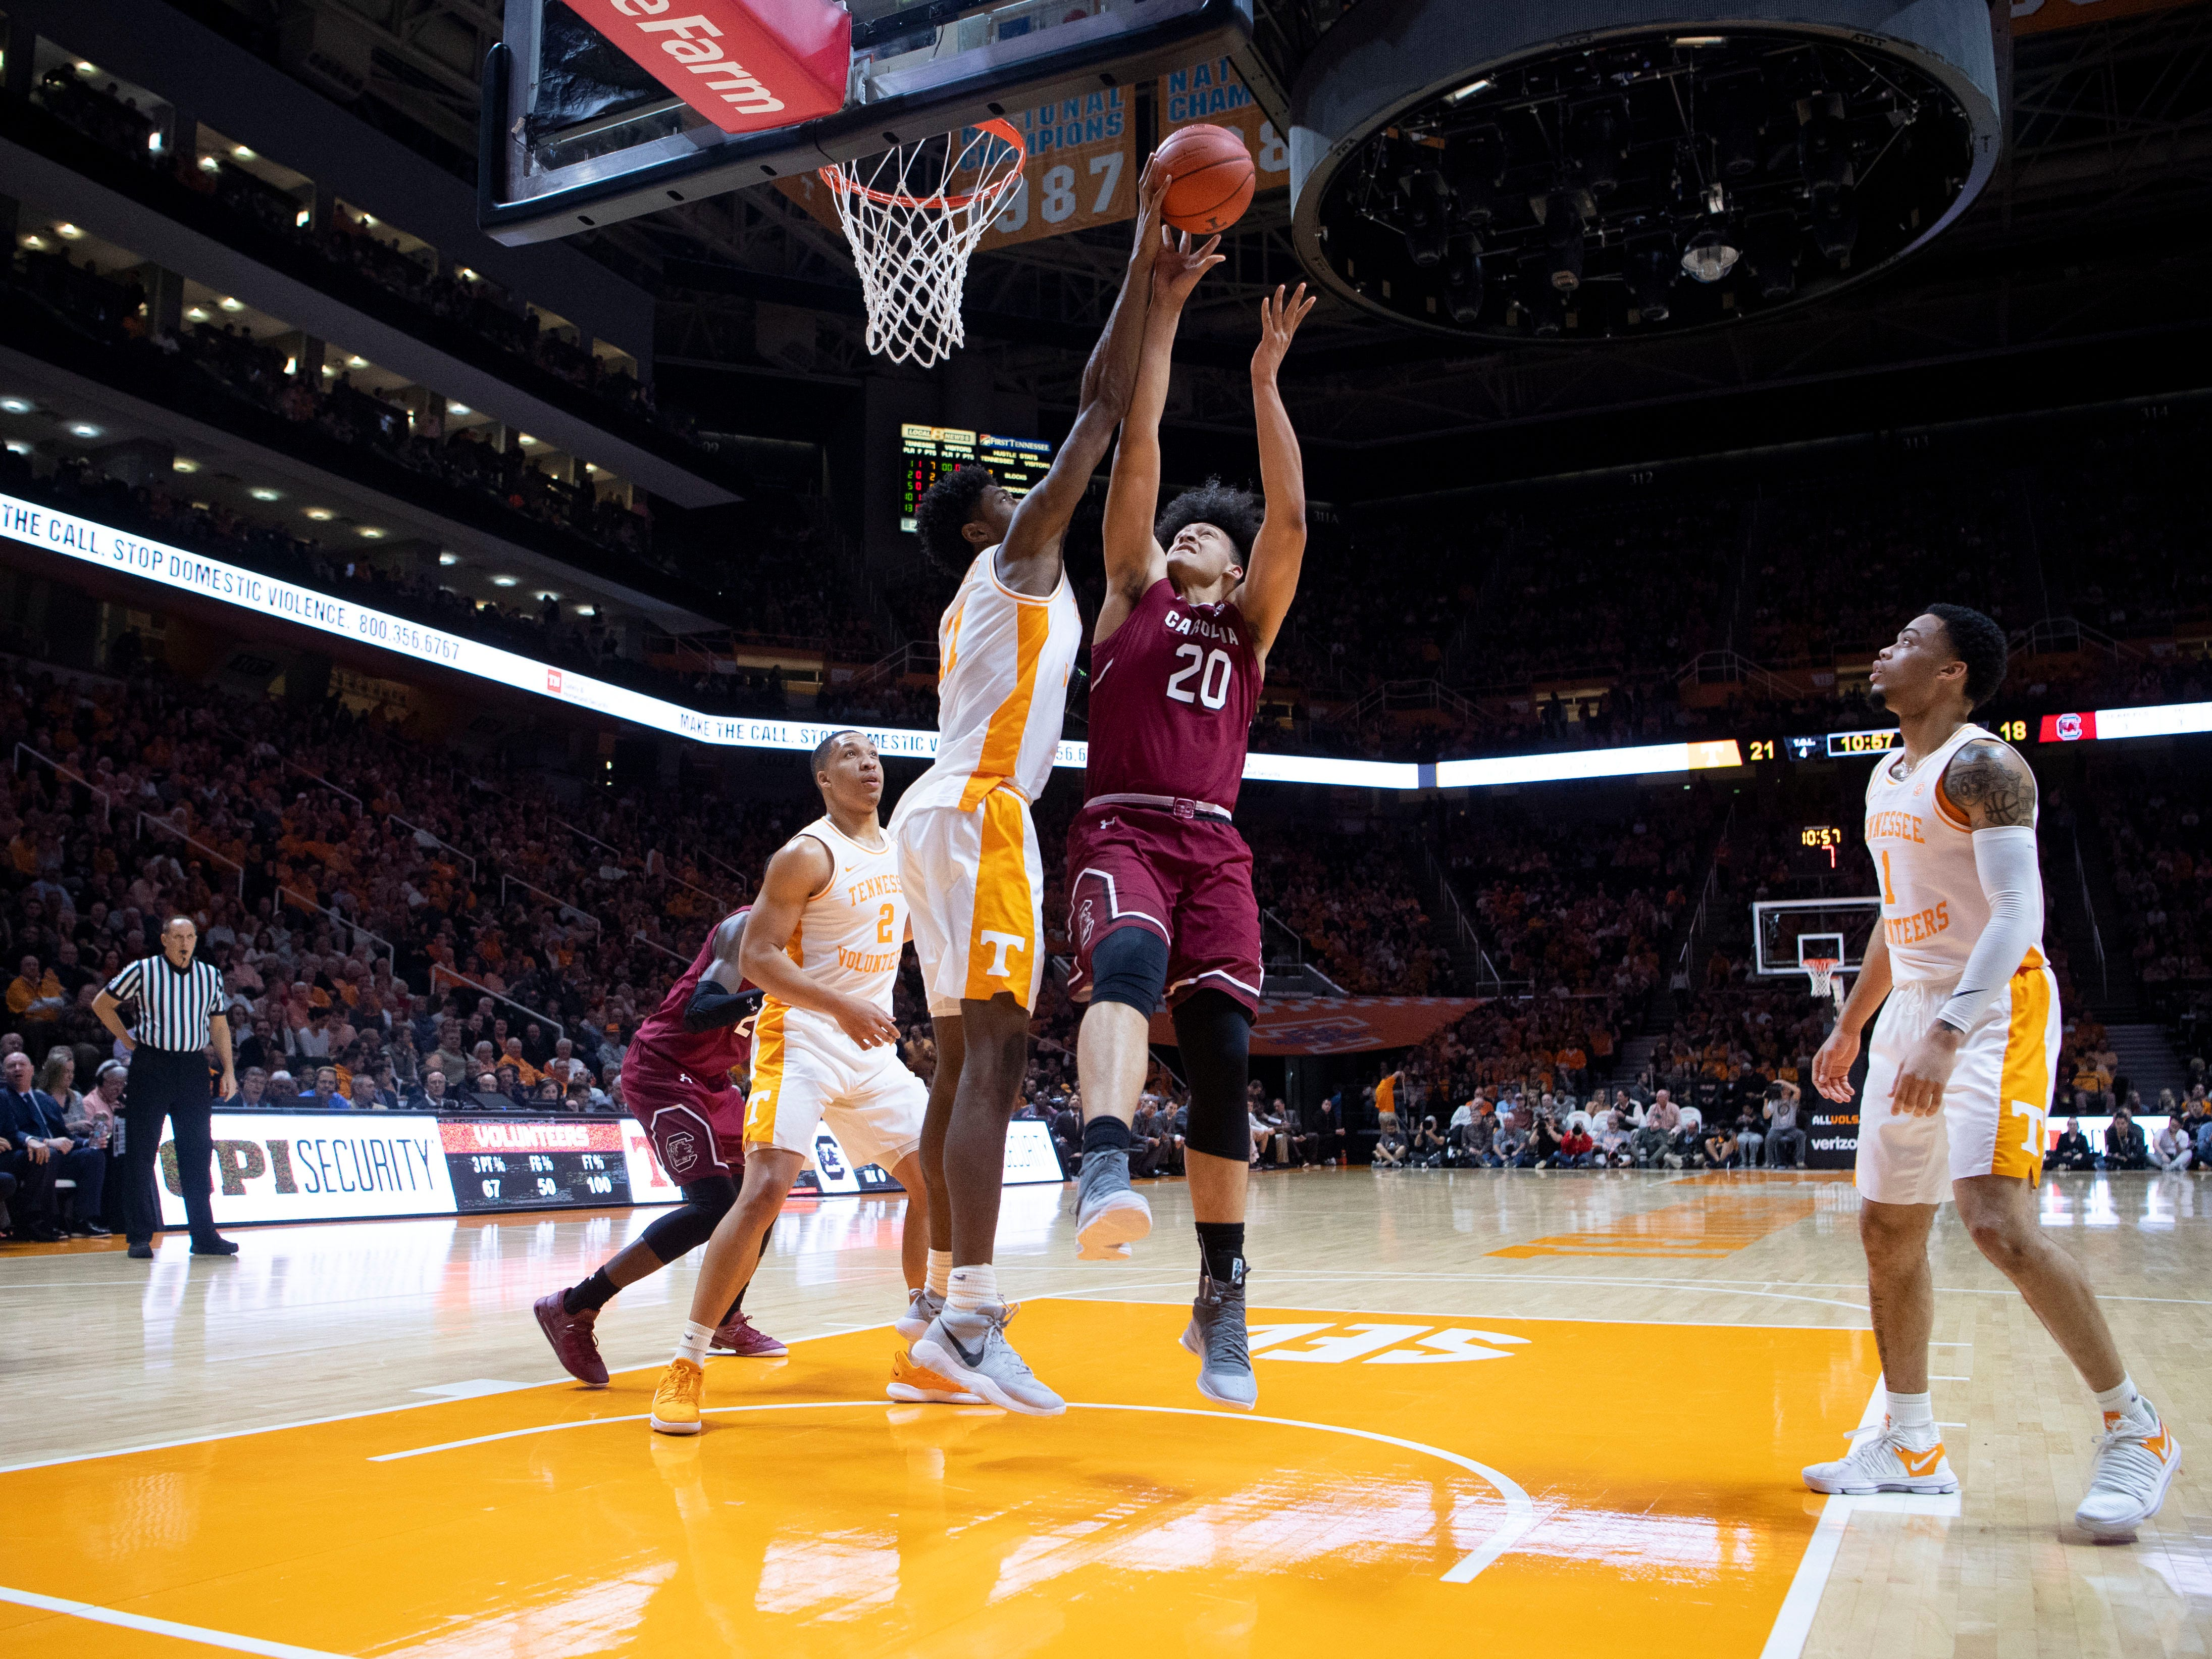 Tennessee's Kyle Alexander (11) blocks a shot attempt by South Carolina Alanzo Frink (20) on Wednesday, February 13, 2019.